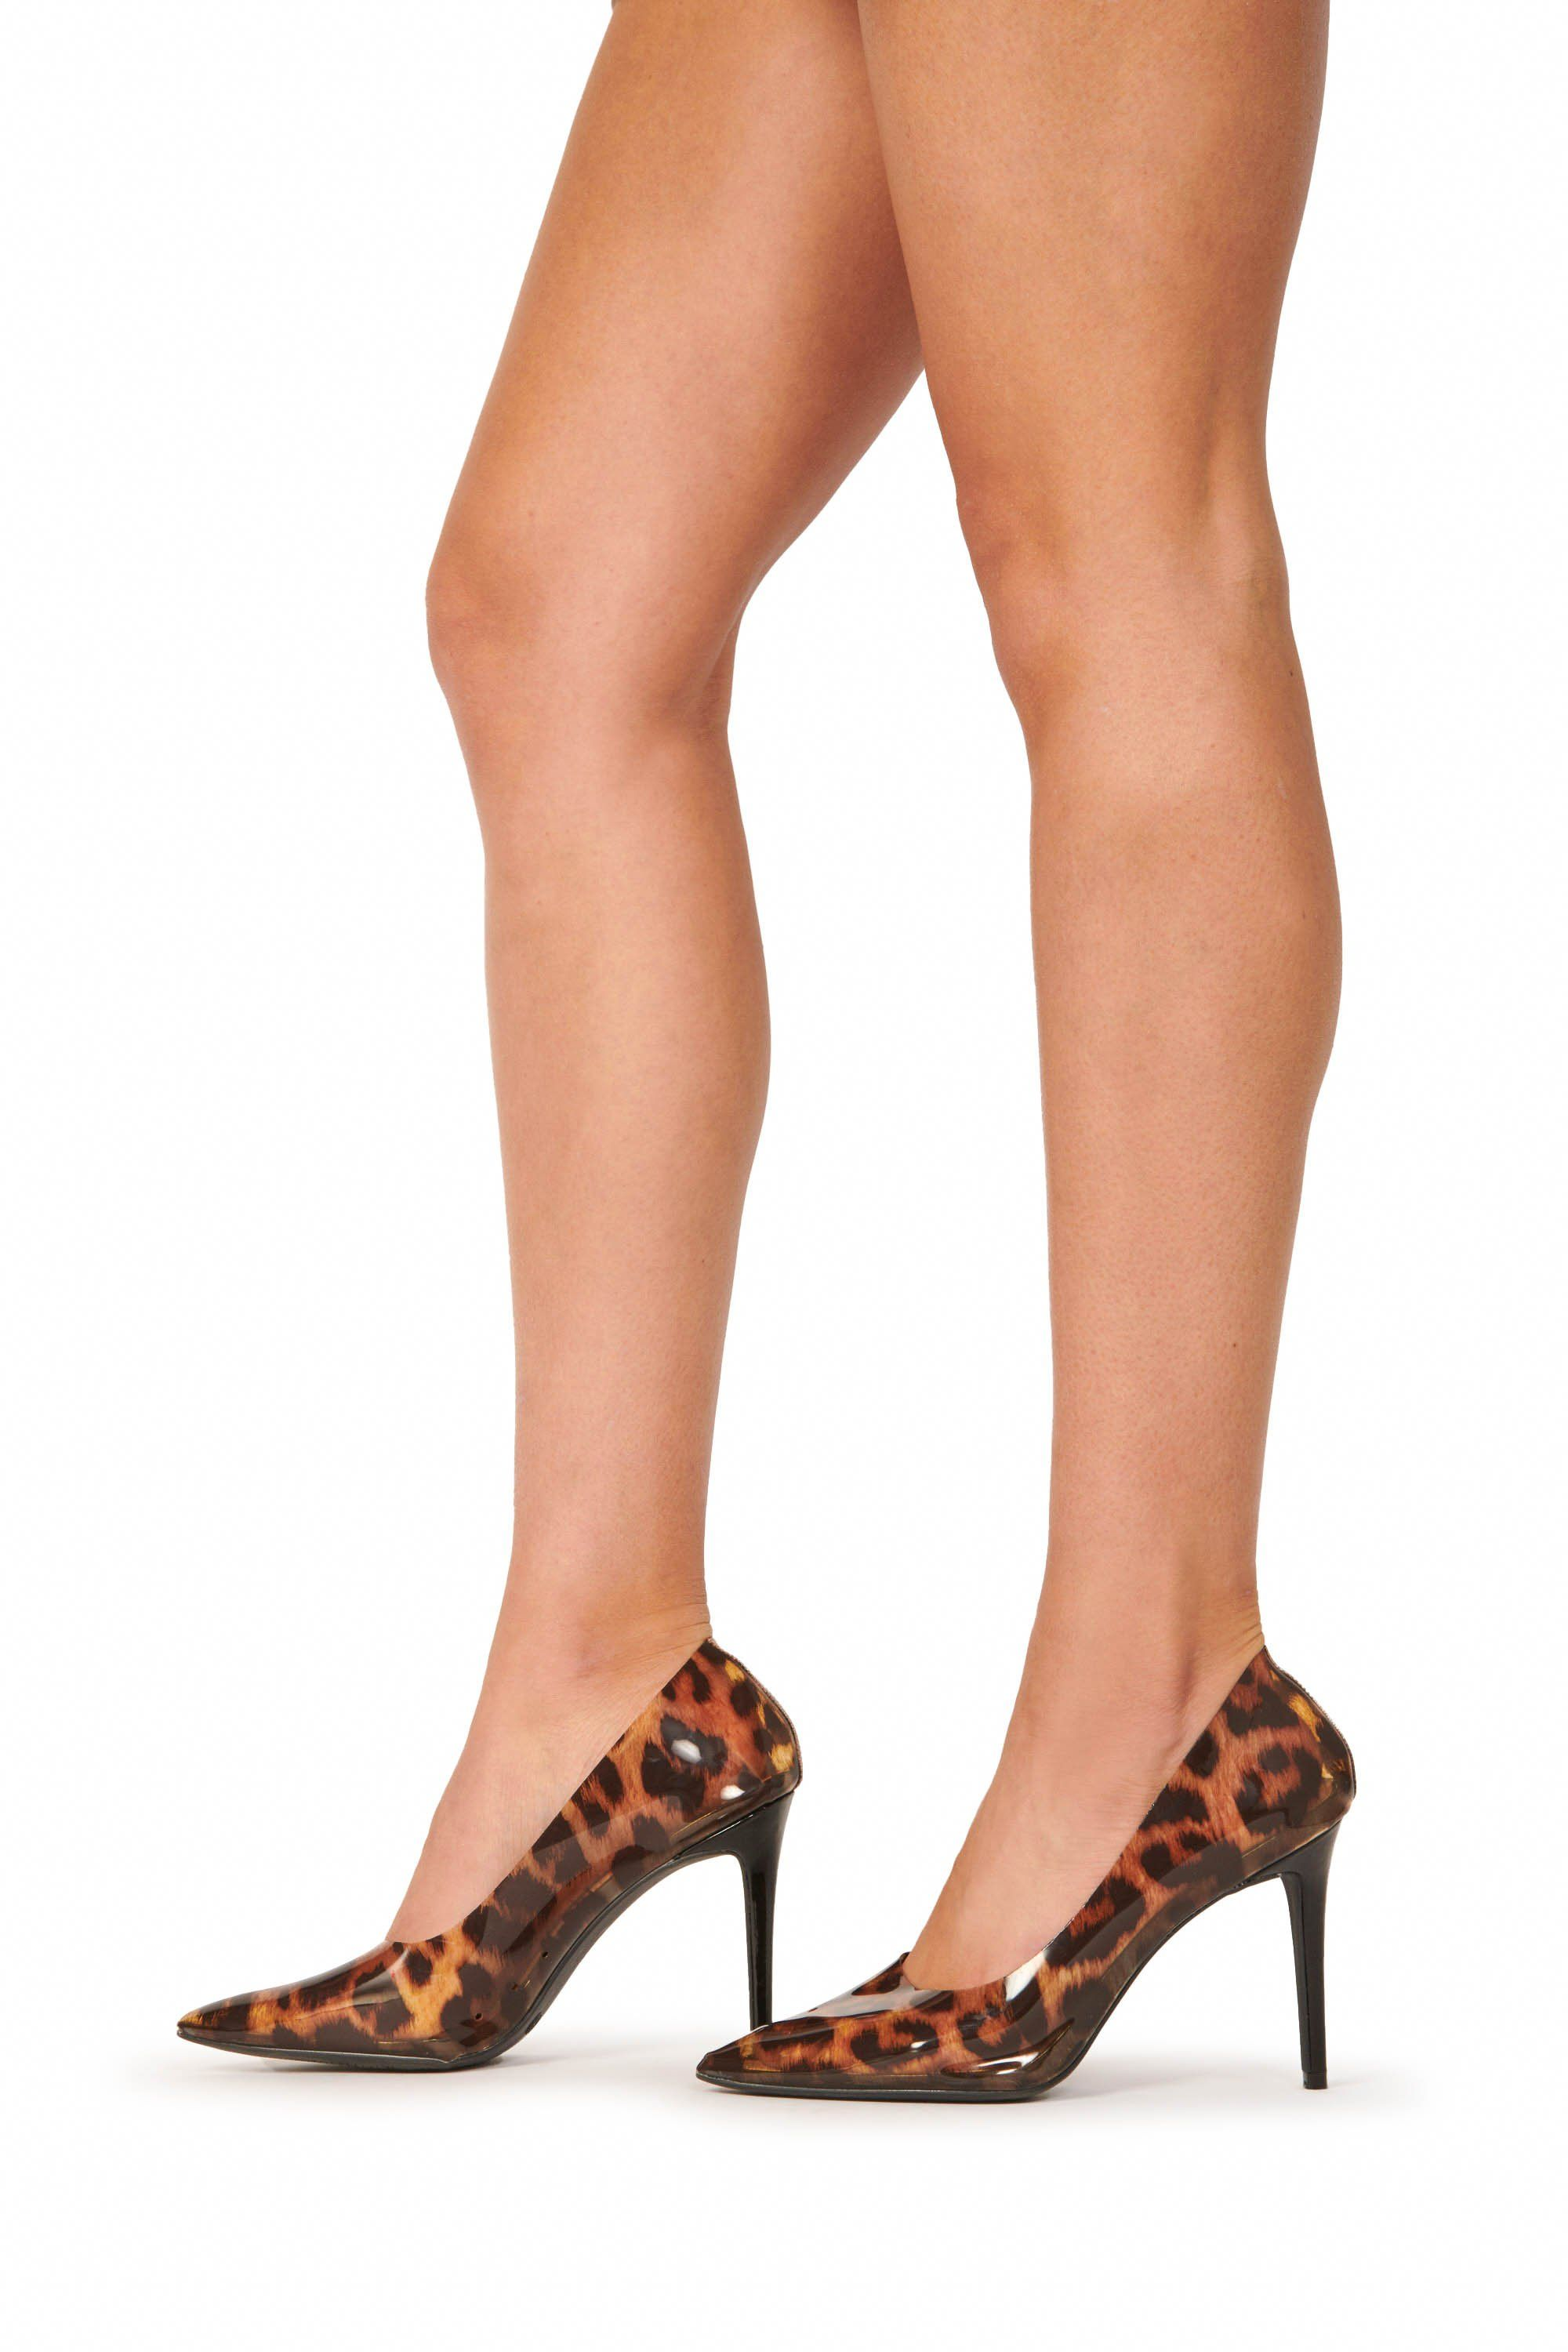 Leopard PVC Pointed Toe Pumps Shoes HYPEACH BOUTIQUE